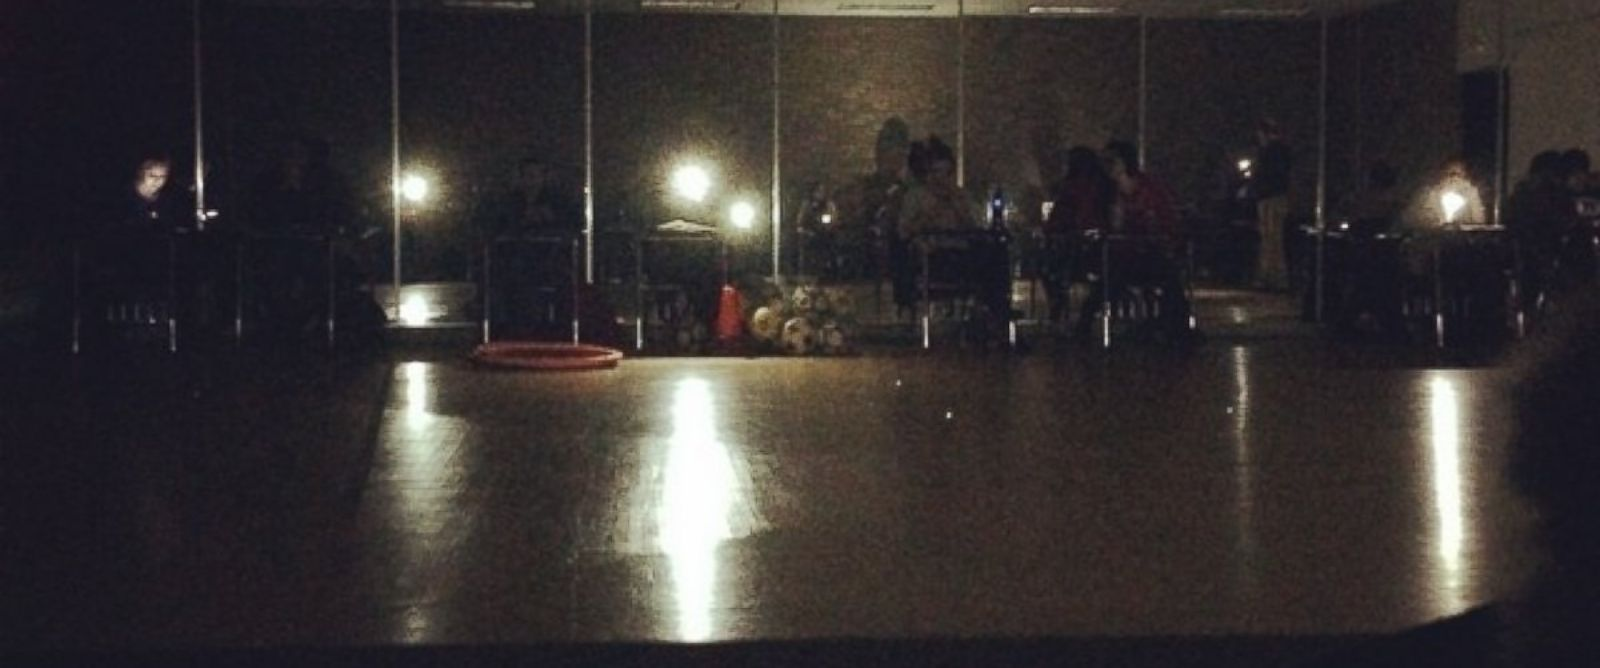 "PHOTO: Instagram user le.gax posted this photo on Dec. 2, 2014 with the caption, ""Power goes out during class? No problem! to the rescue #wsu #lightsout #ghettostyle #detroit"""